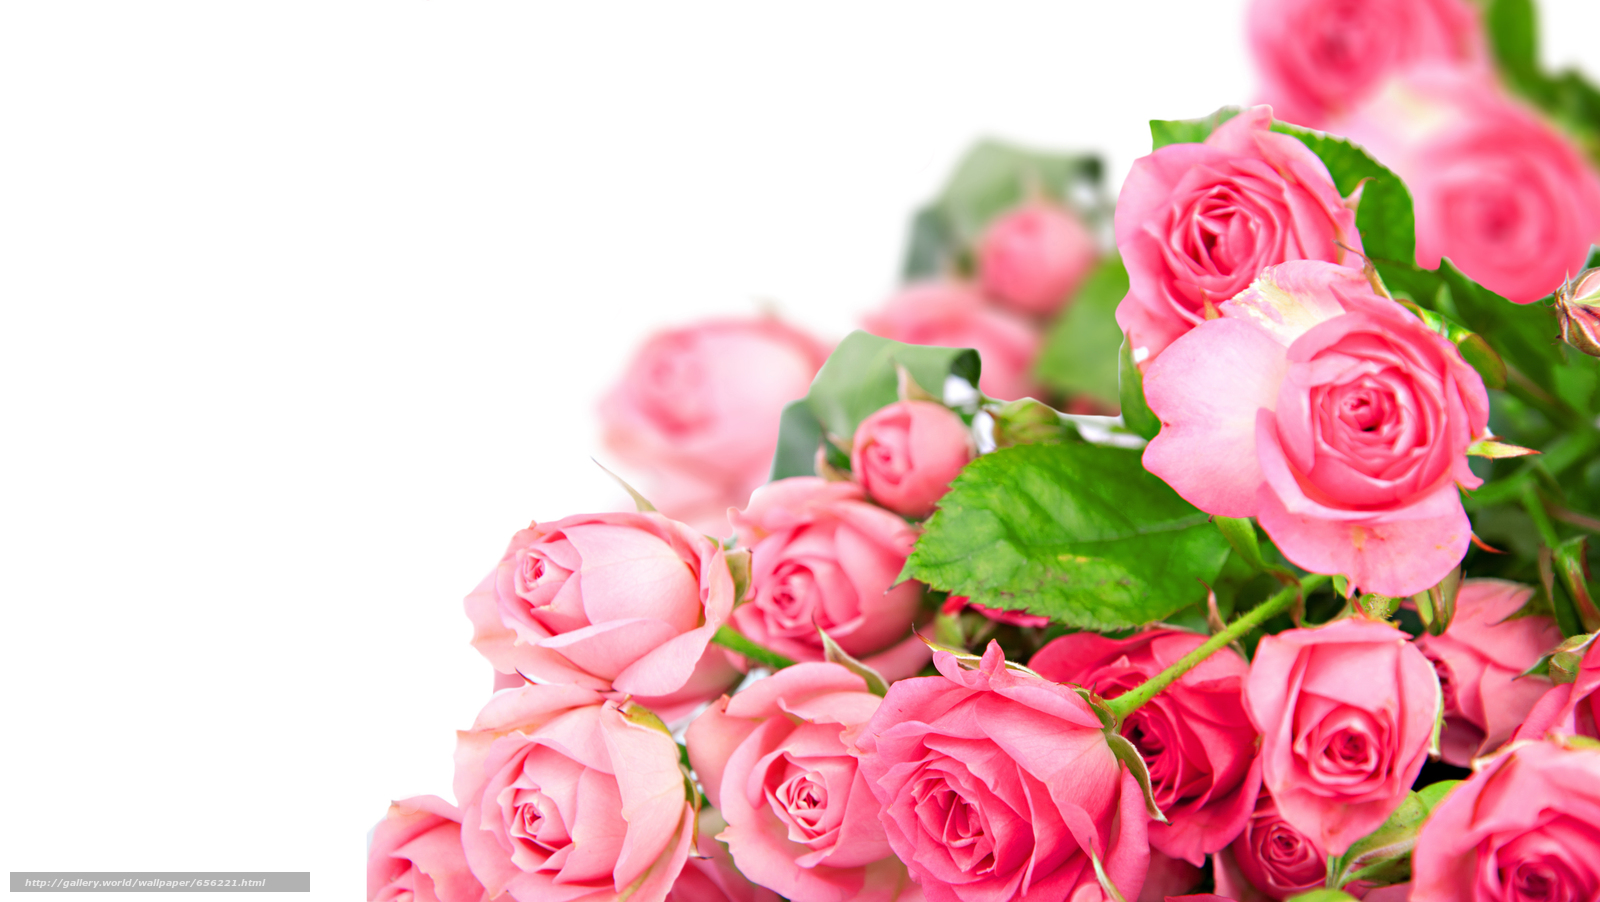 Download wallpaper Personas by Kisenok,  Roses,  pink,  Flowers free desktop wallpaper in the resolution 5549x3129 — picture №656221